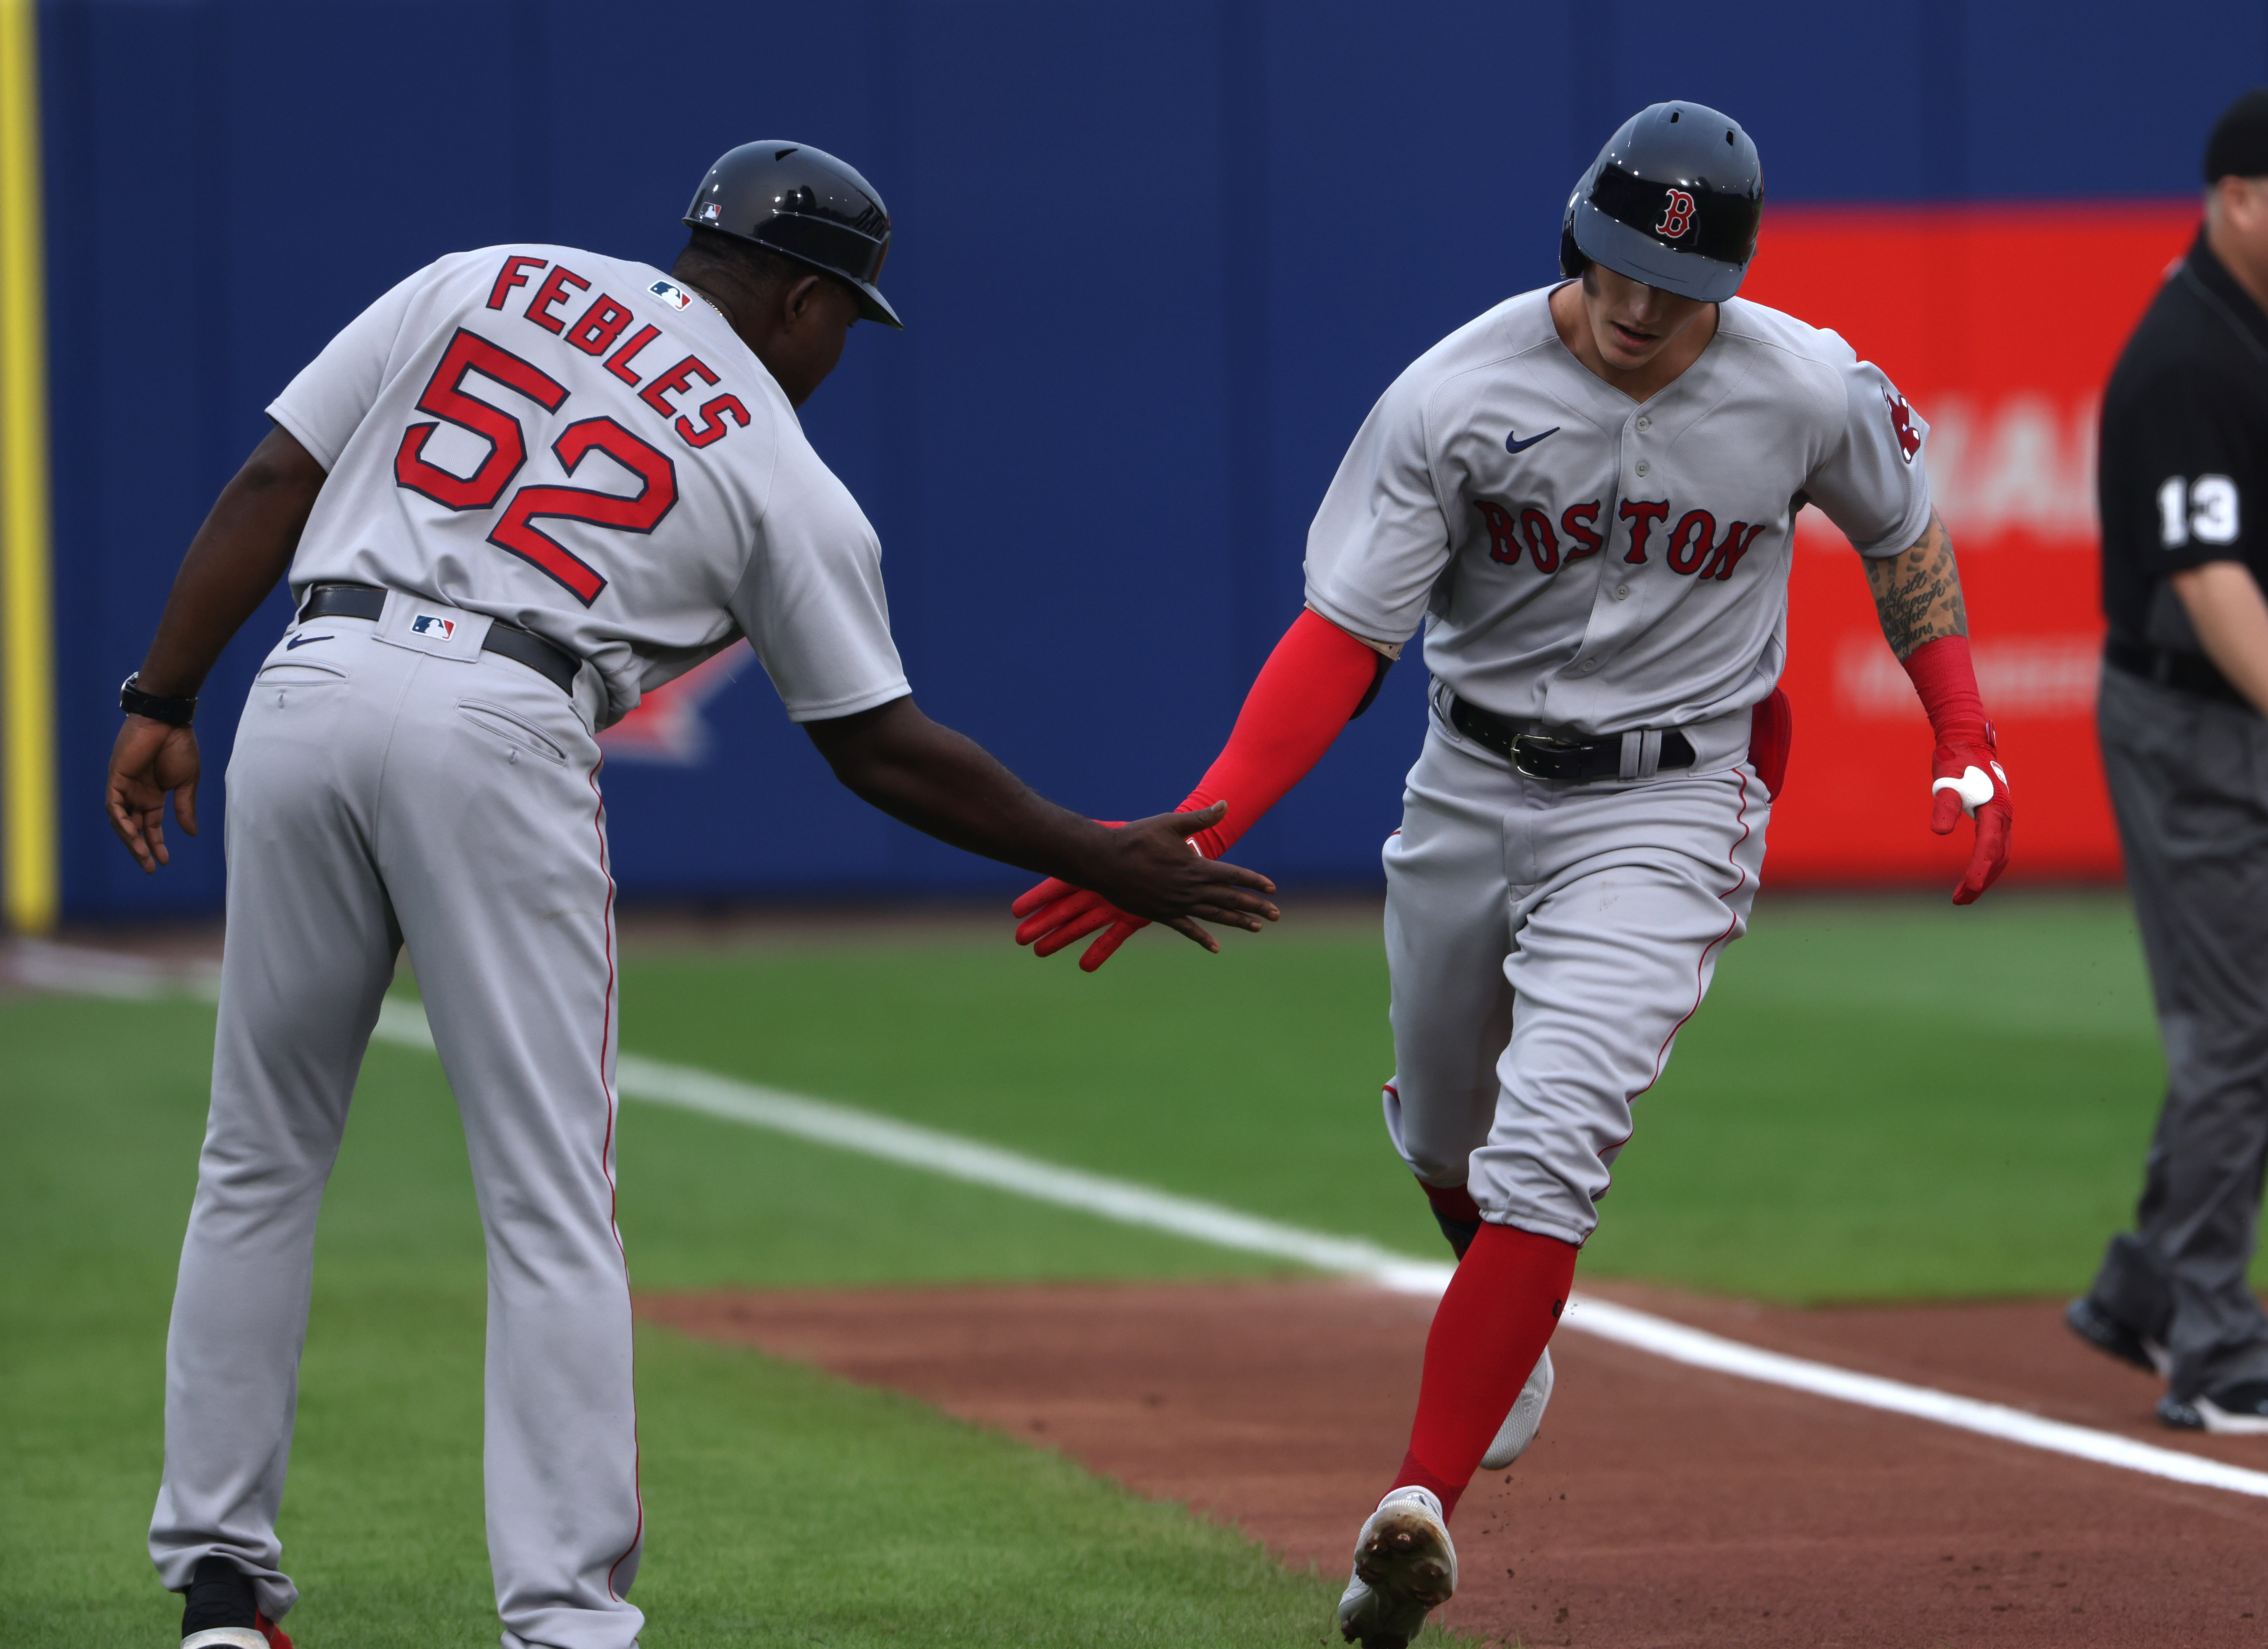 Boston Red Sox center fielder Jarren Duran (40) celebrates his home run with third base coach Carlos Febles (52) during the first inning against Toronto Blue Jays at Sahlen Field.